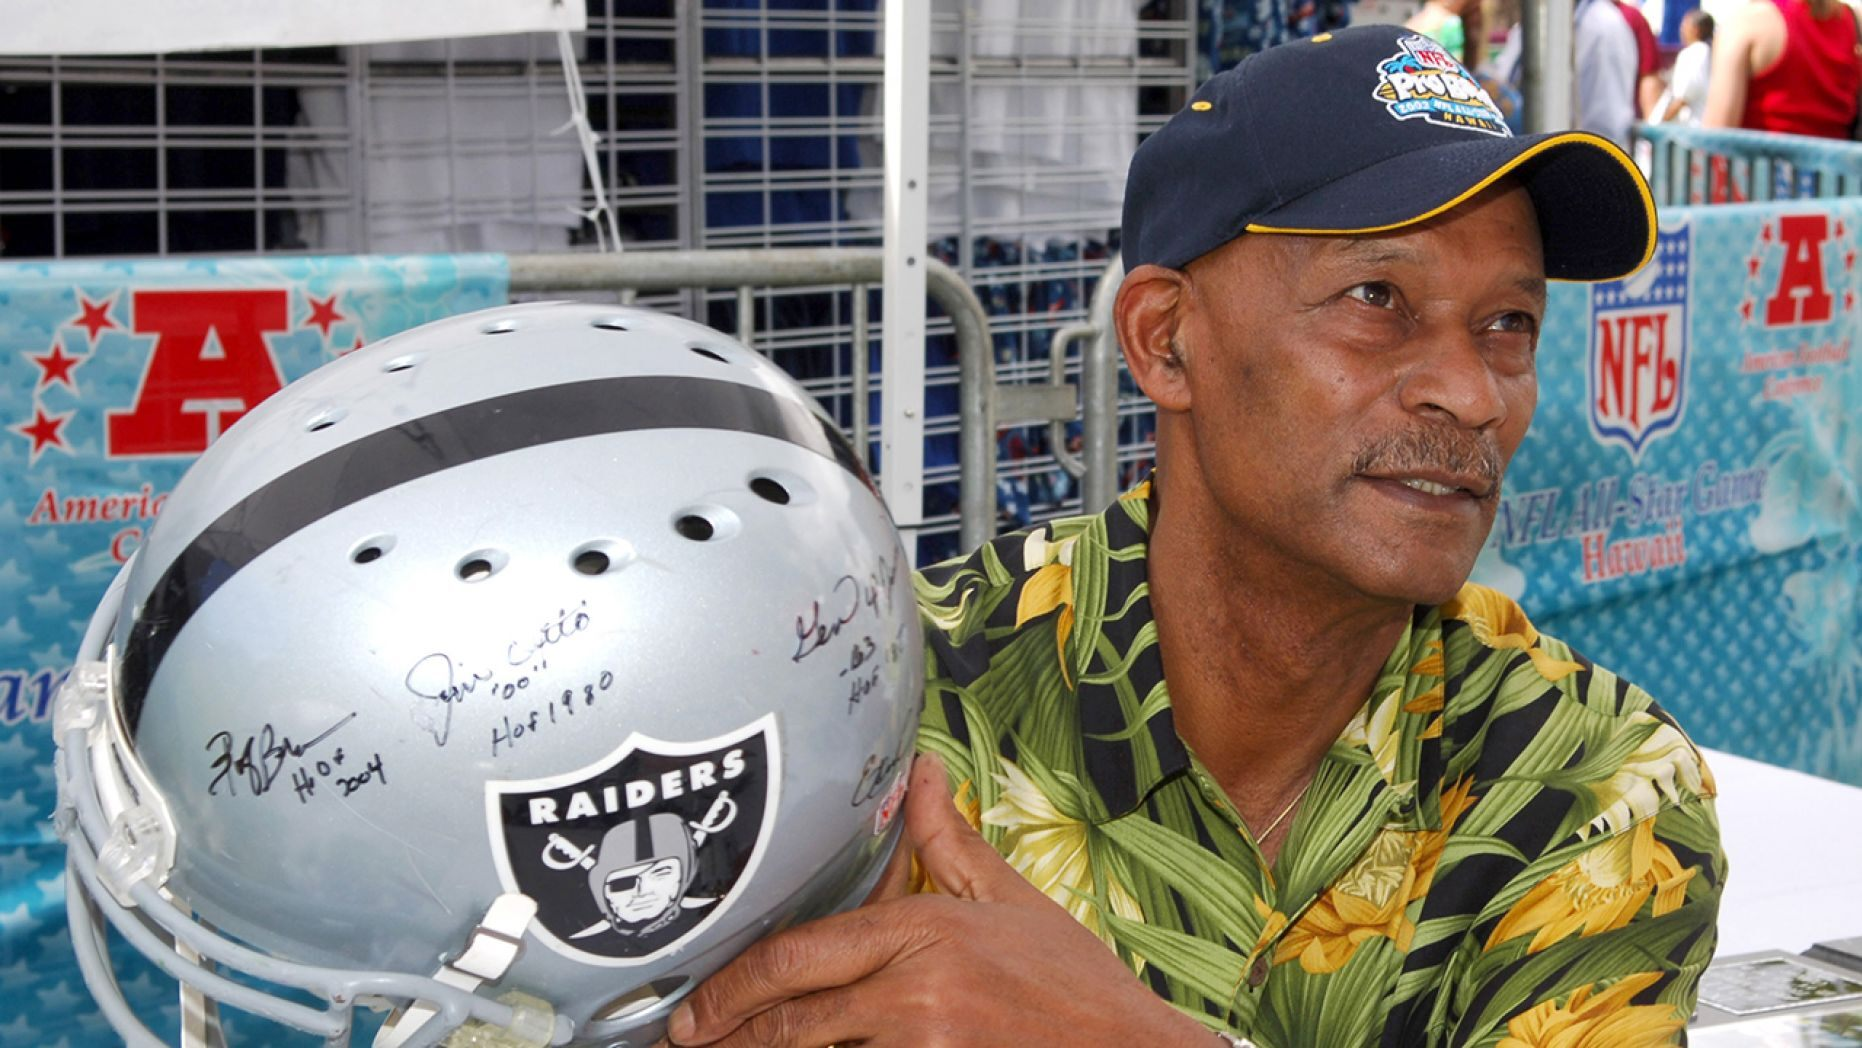 Willie Brown holds an autographed Riddell Raiders helmet at the Pro Bowl Footbal Festival at Kapiolani Park in Honolulu, Hawaii on Saturday, February 11, 2006.